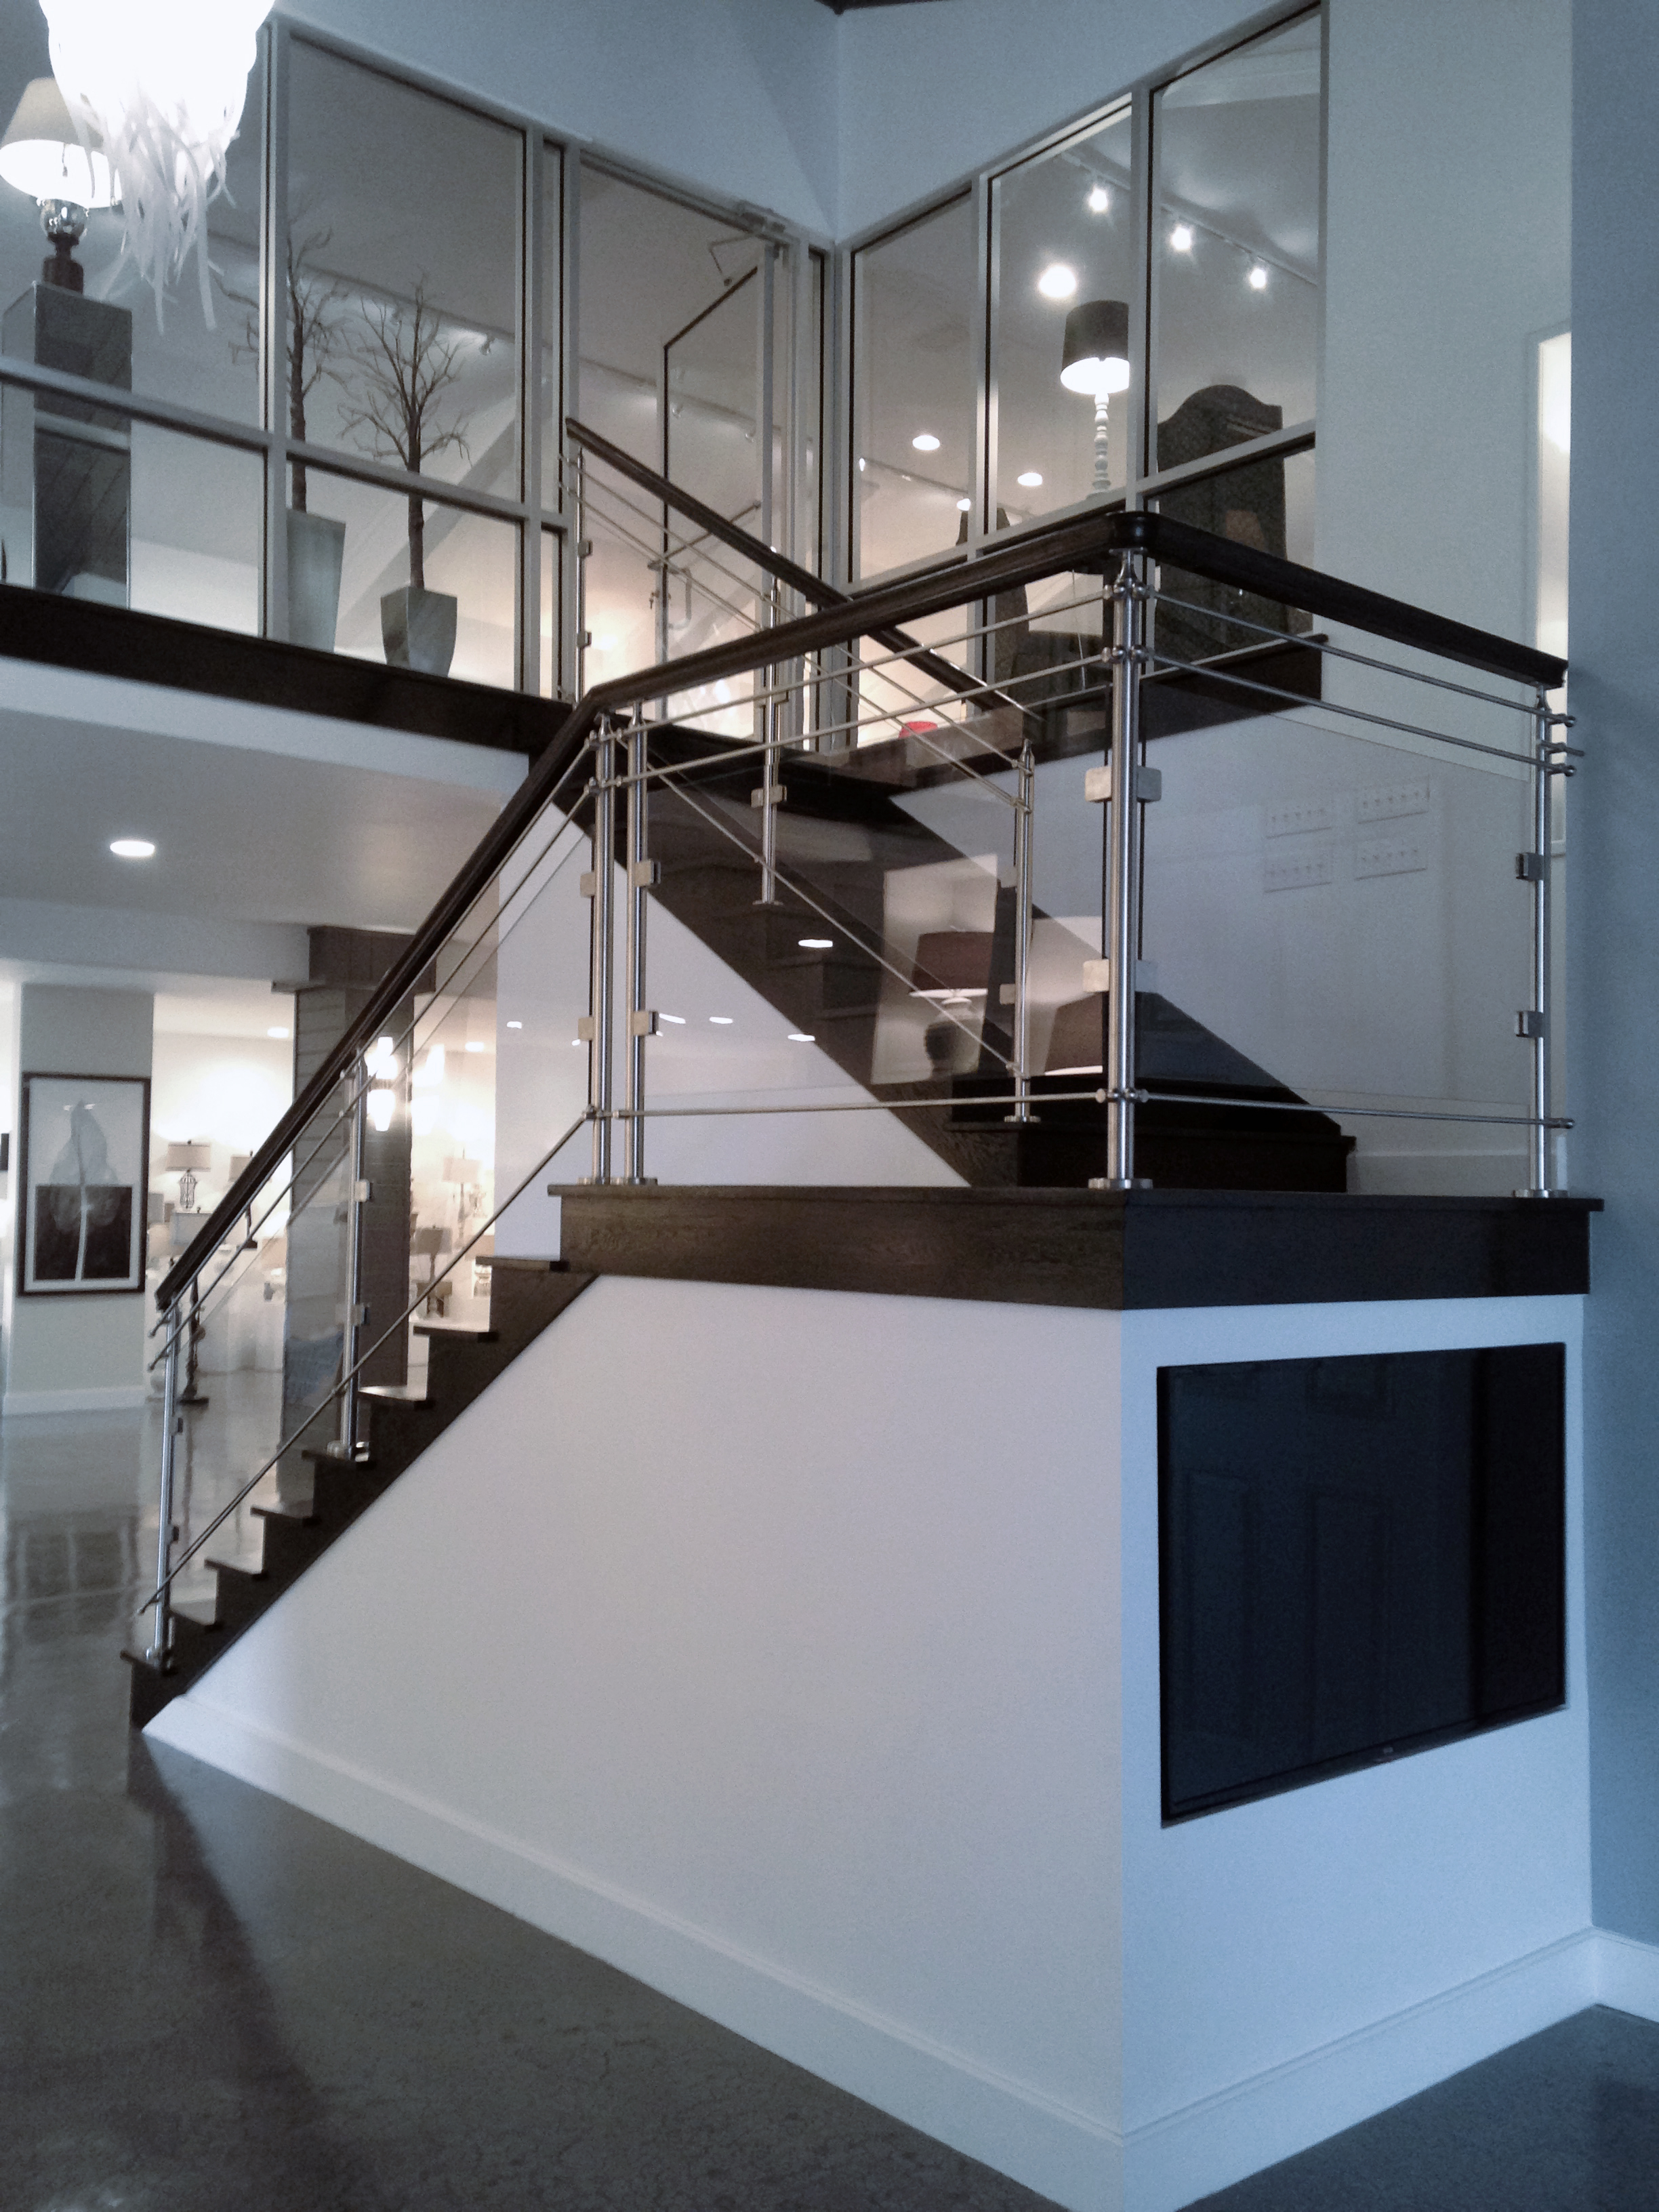 Oak Pointe_Cable and Glass Systems_Stainless Steel Newels with Glass Infill.JPG